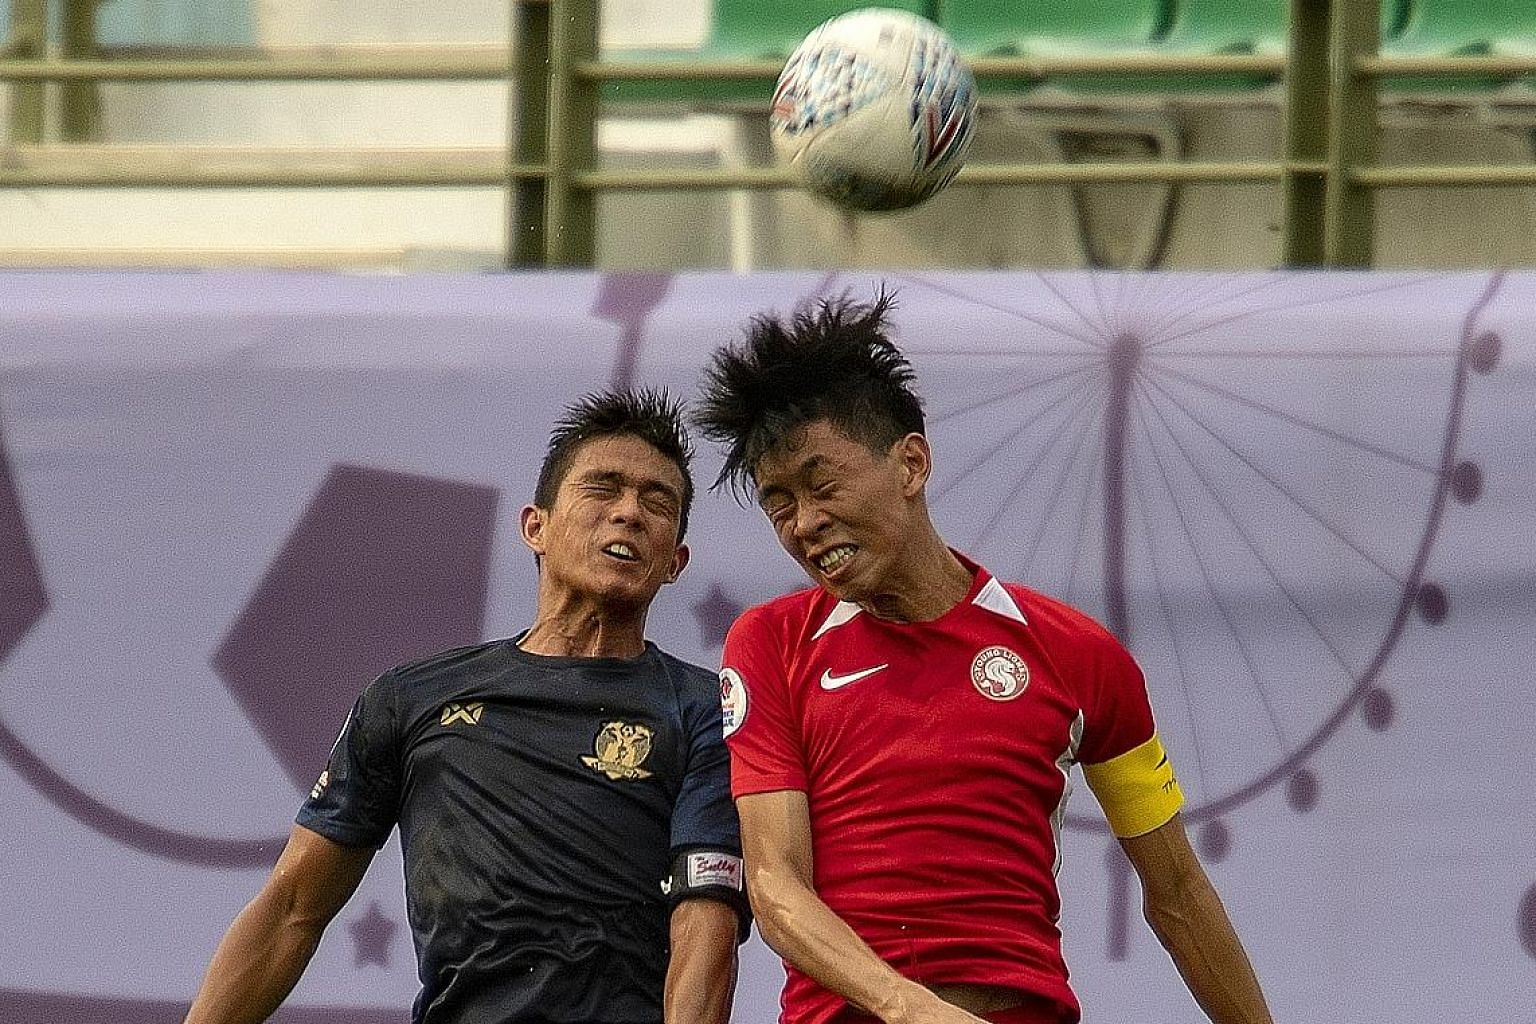 Young Lions captain Joshua Pereira challenging Hougang United's Hafiz Sujad in their 2-1 Singapore Premier League win last Sunday.